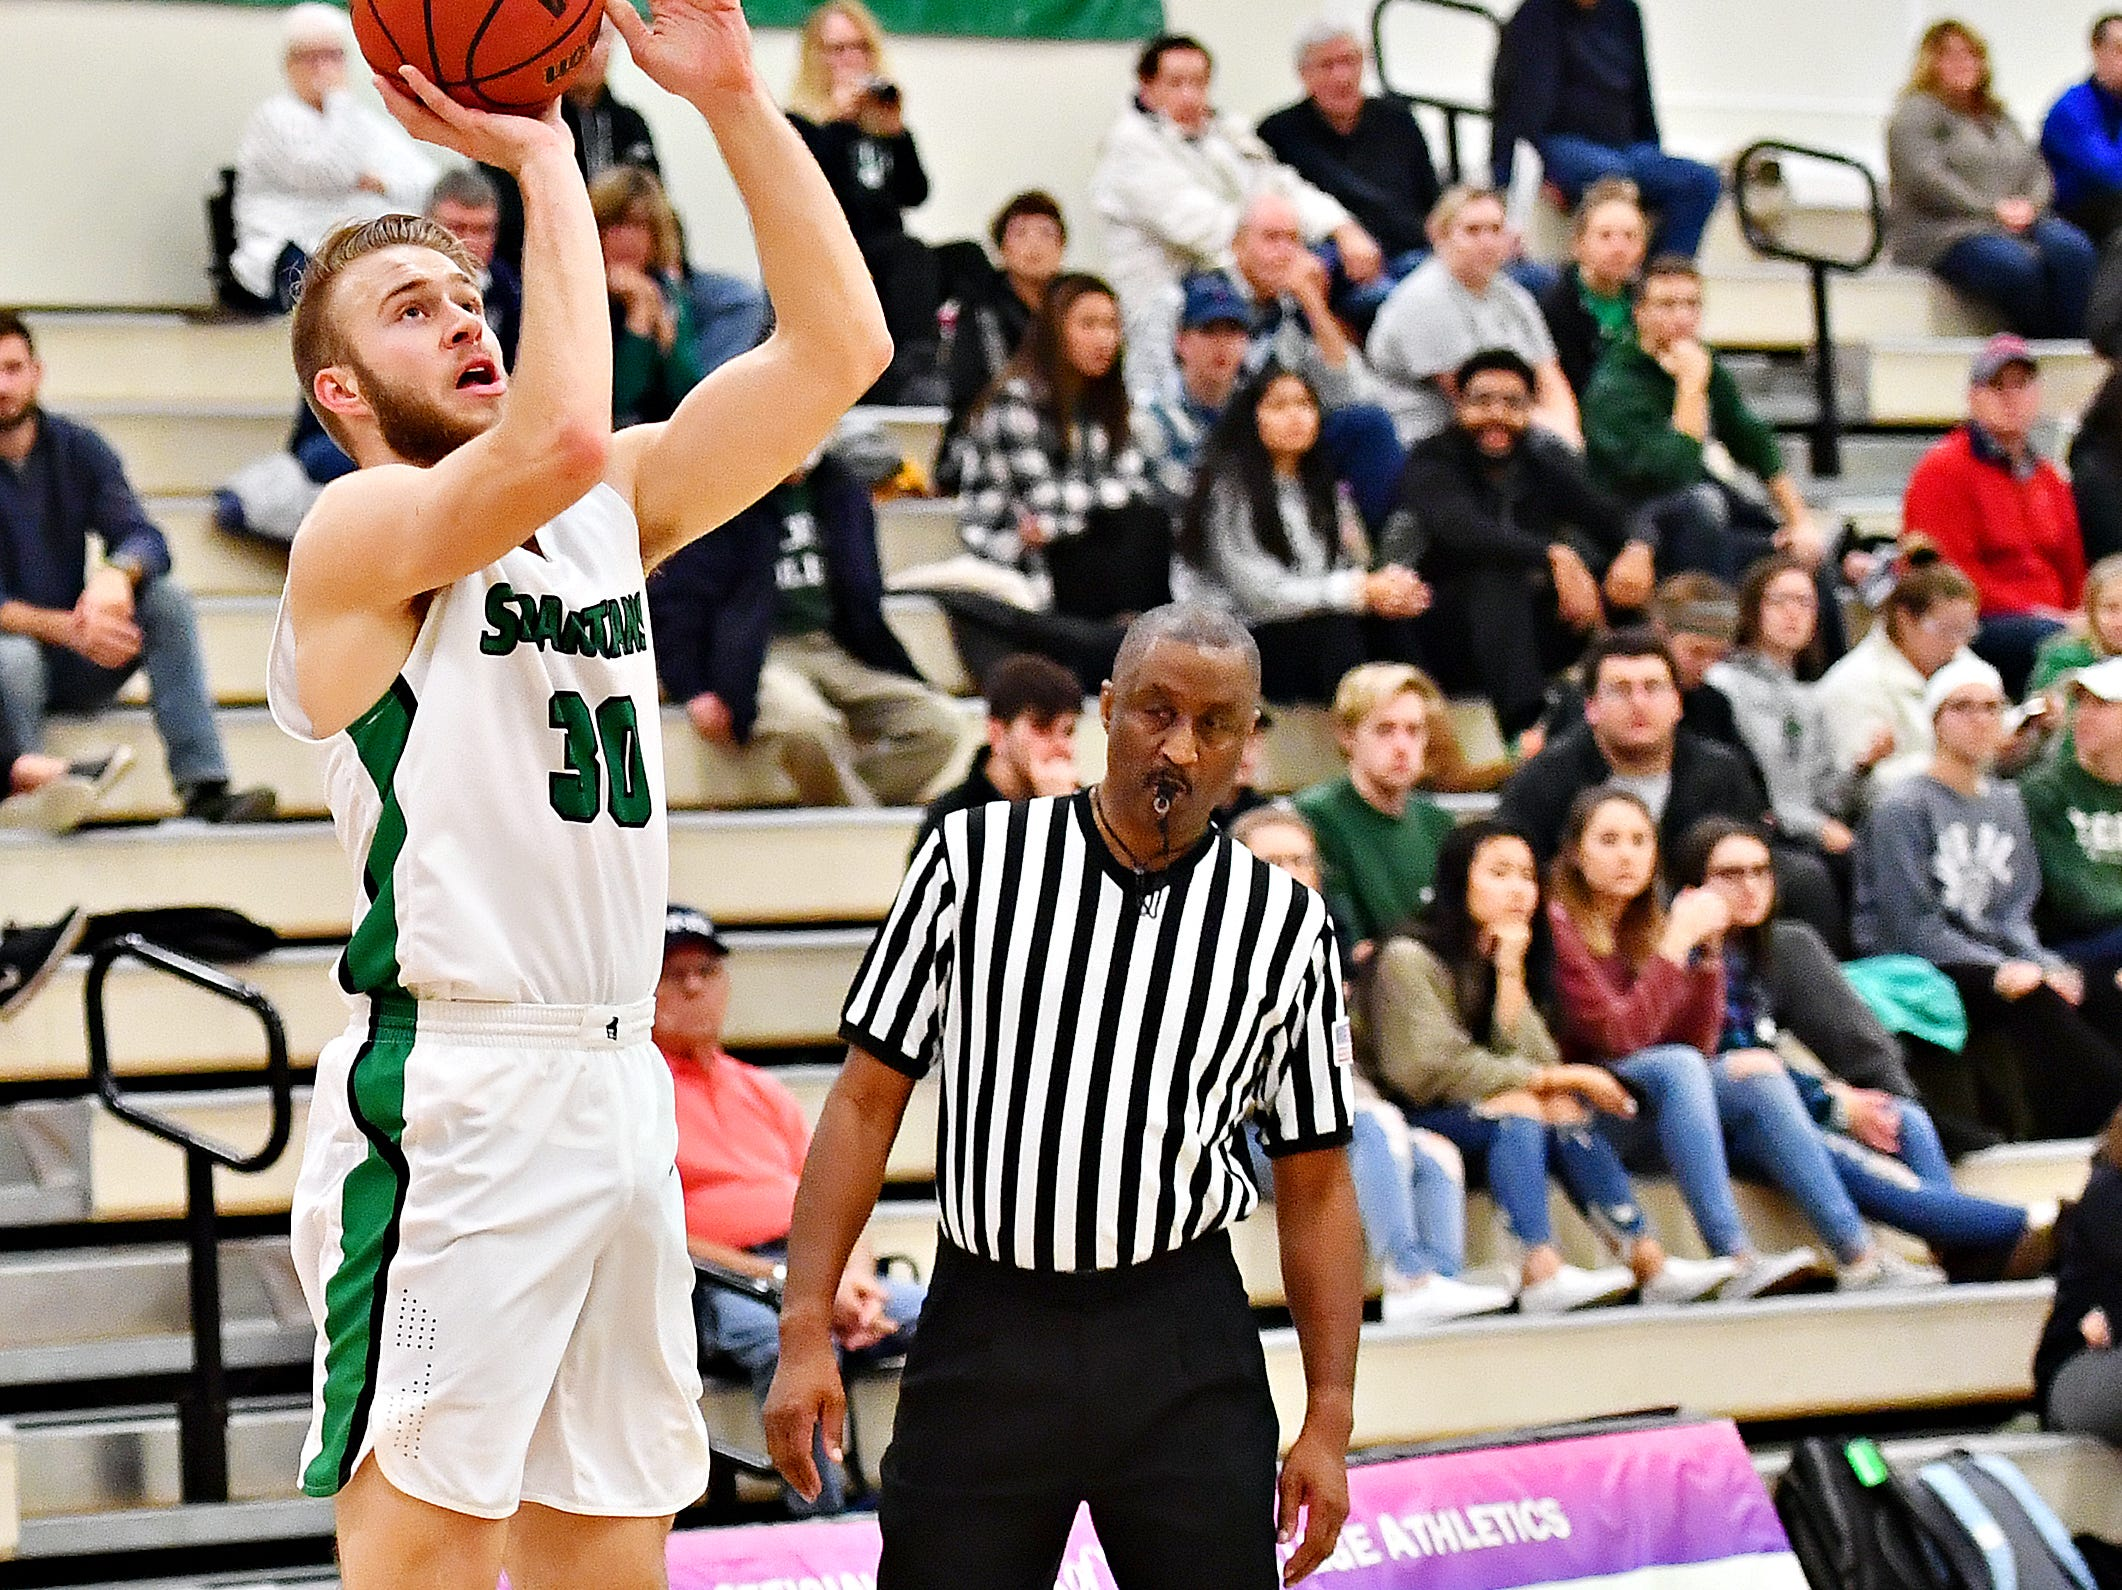 York College's Joey Polczynski lines up his shot during men's basketball action against Gwynedd-Mercy at Grumbacher Sport and Fitness Center in Spring Garden Township, Wednesday, Nov. 28, 2018. Dawn J. Sagert photo